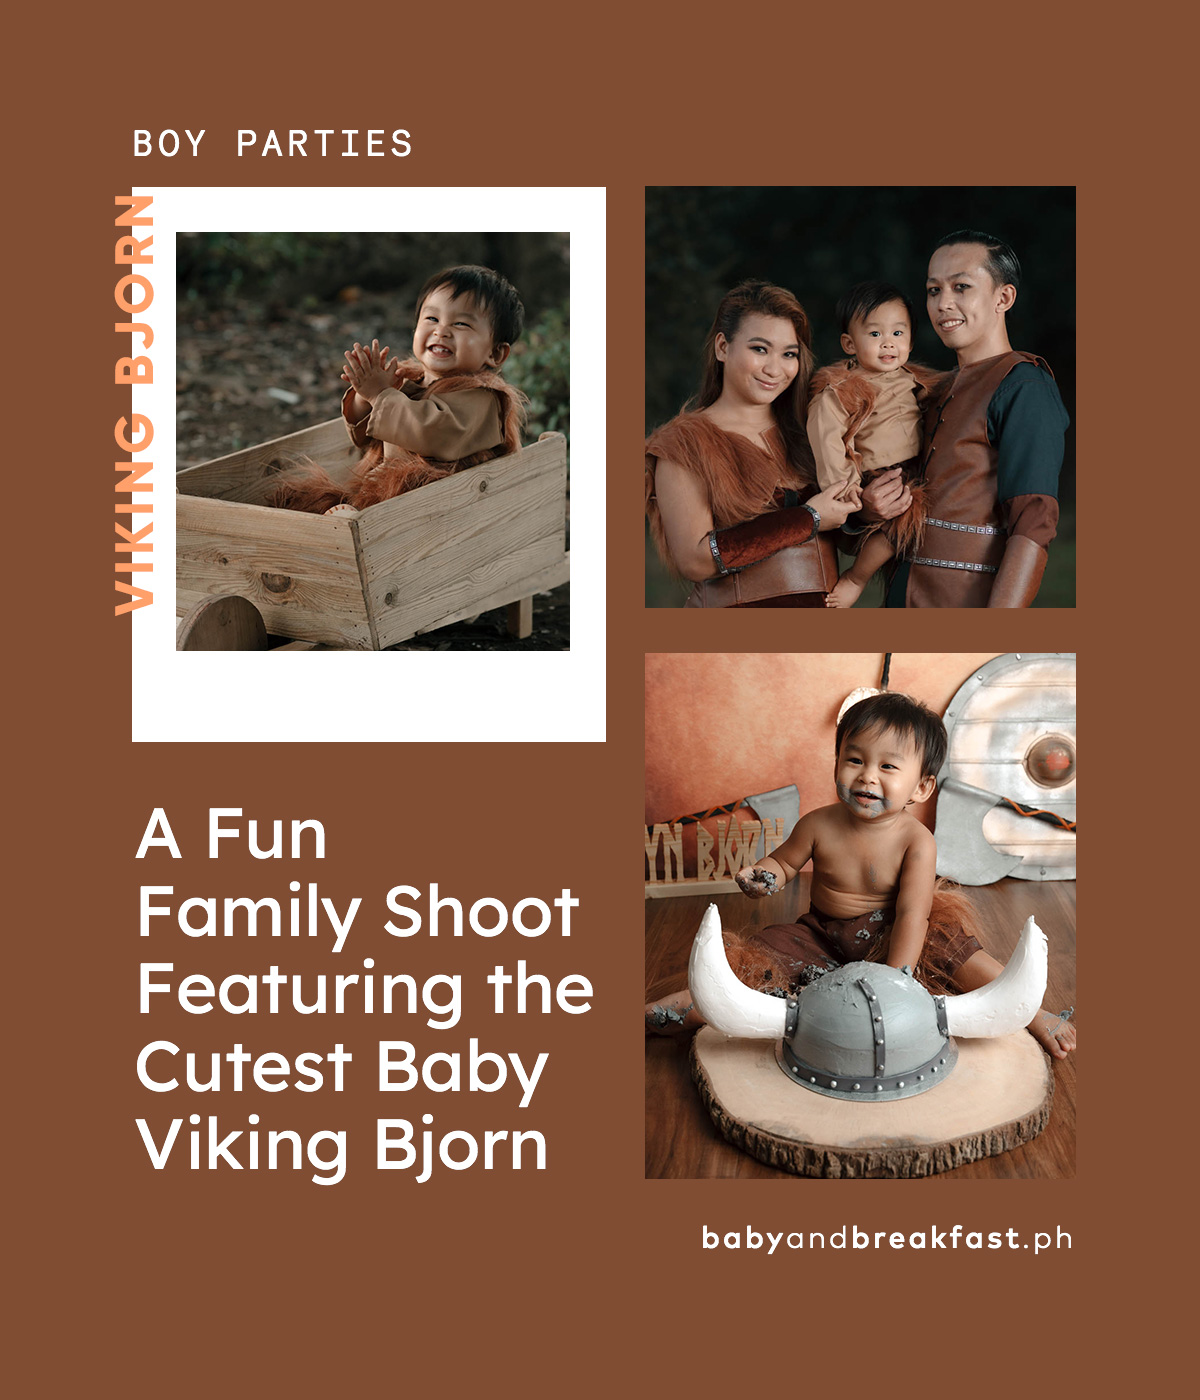 A Fun Family Shoot Featuring the Cutest Baby Viking Bjorn